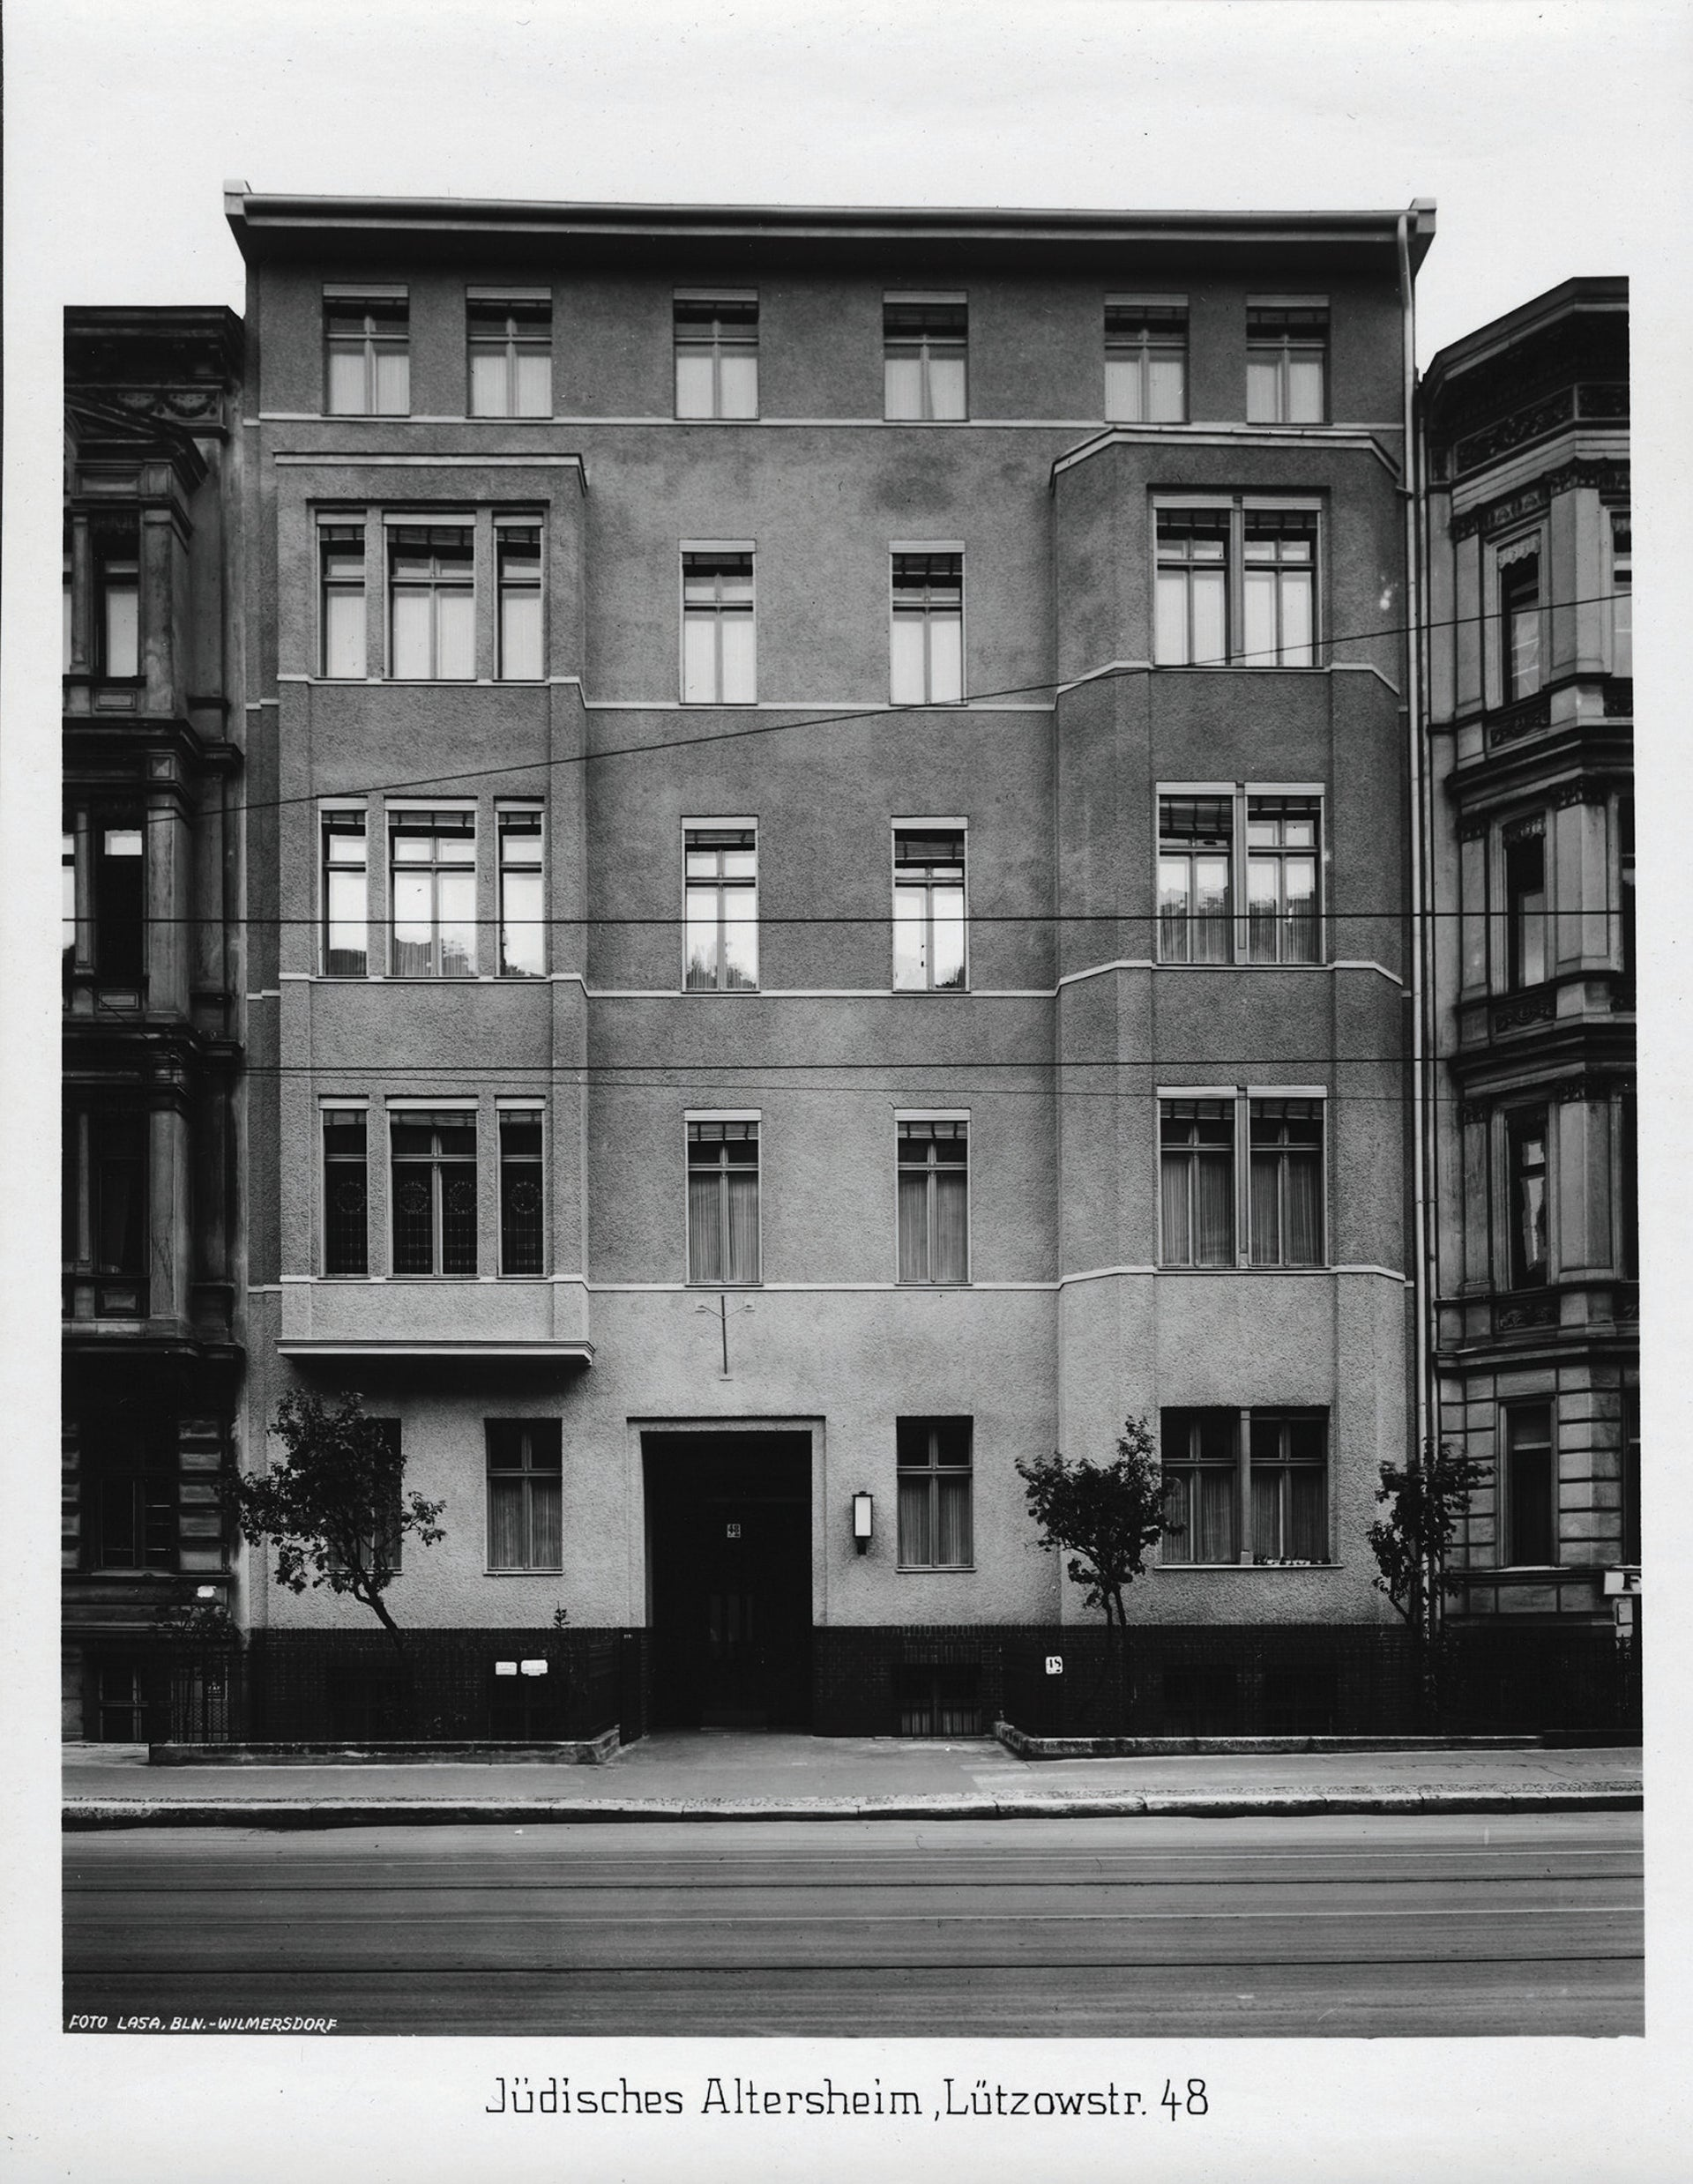 Lützowstrasse 48/49 in Berlin. The Jewish retirement home was confiscated by the Nazis in 1941 and became the SS office where Gustaf Ekström worked.